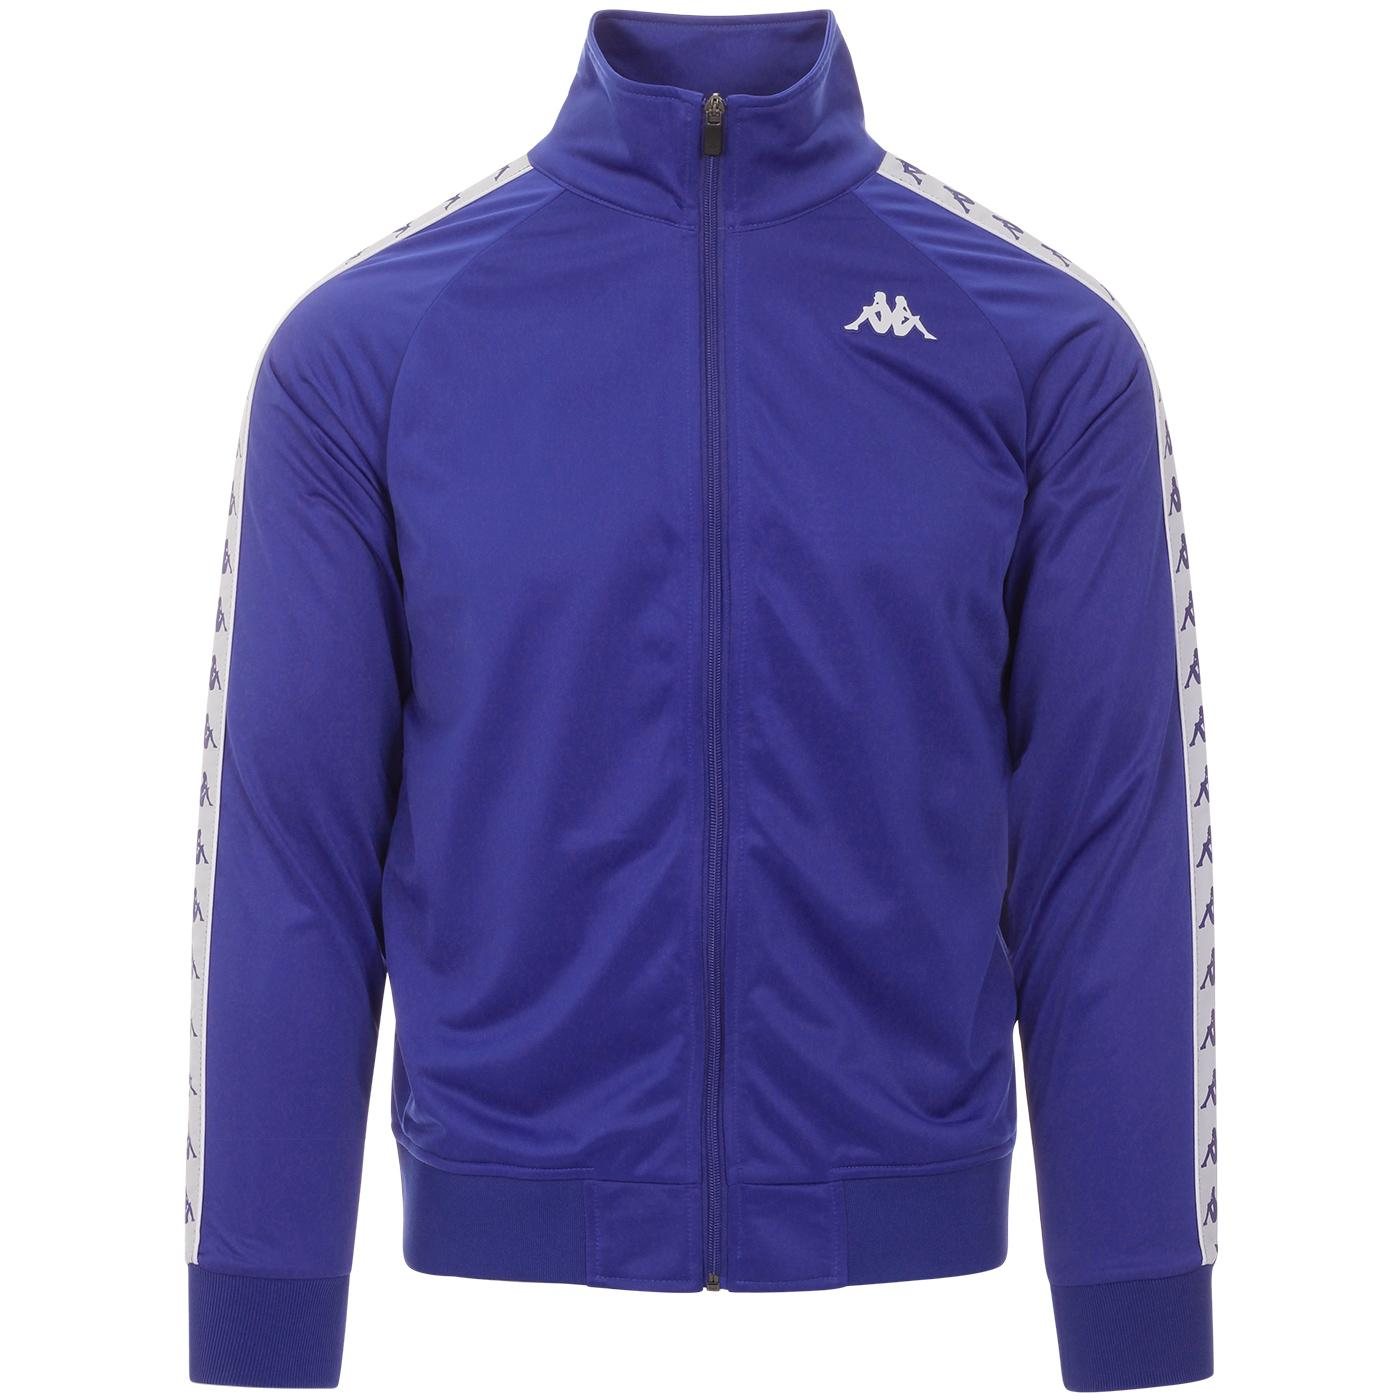 Anniston Banda 222 KAPPA Retro Track Jacket (RB)